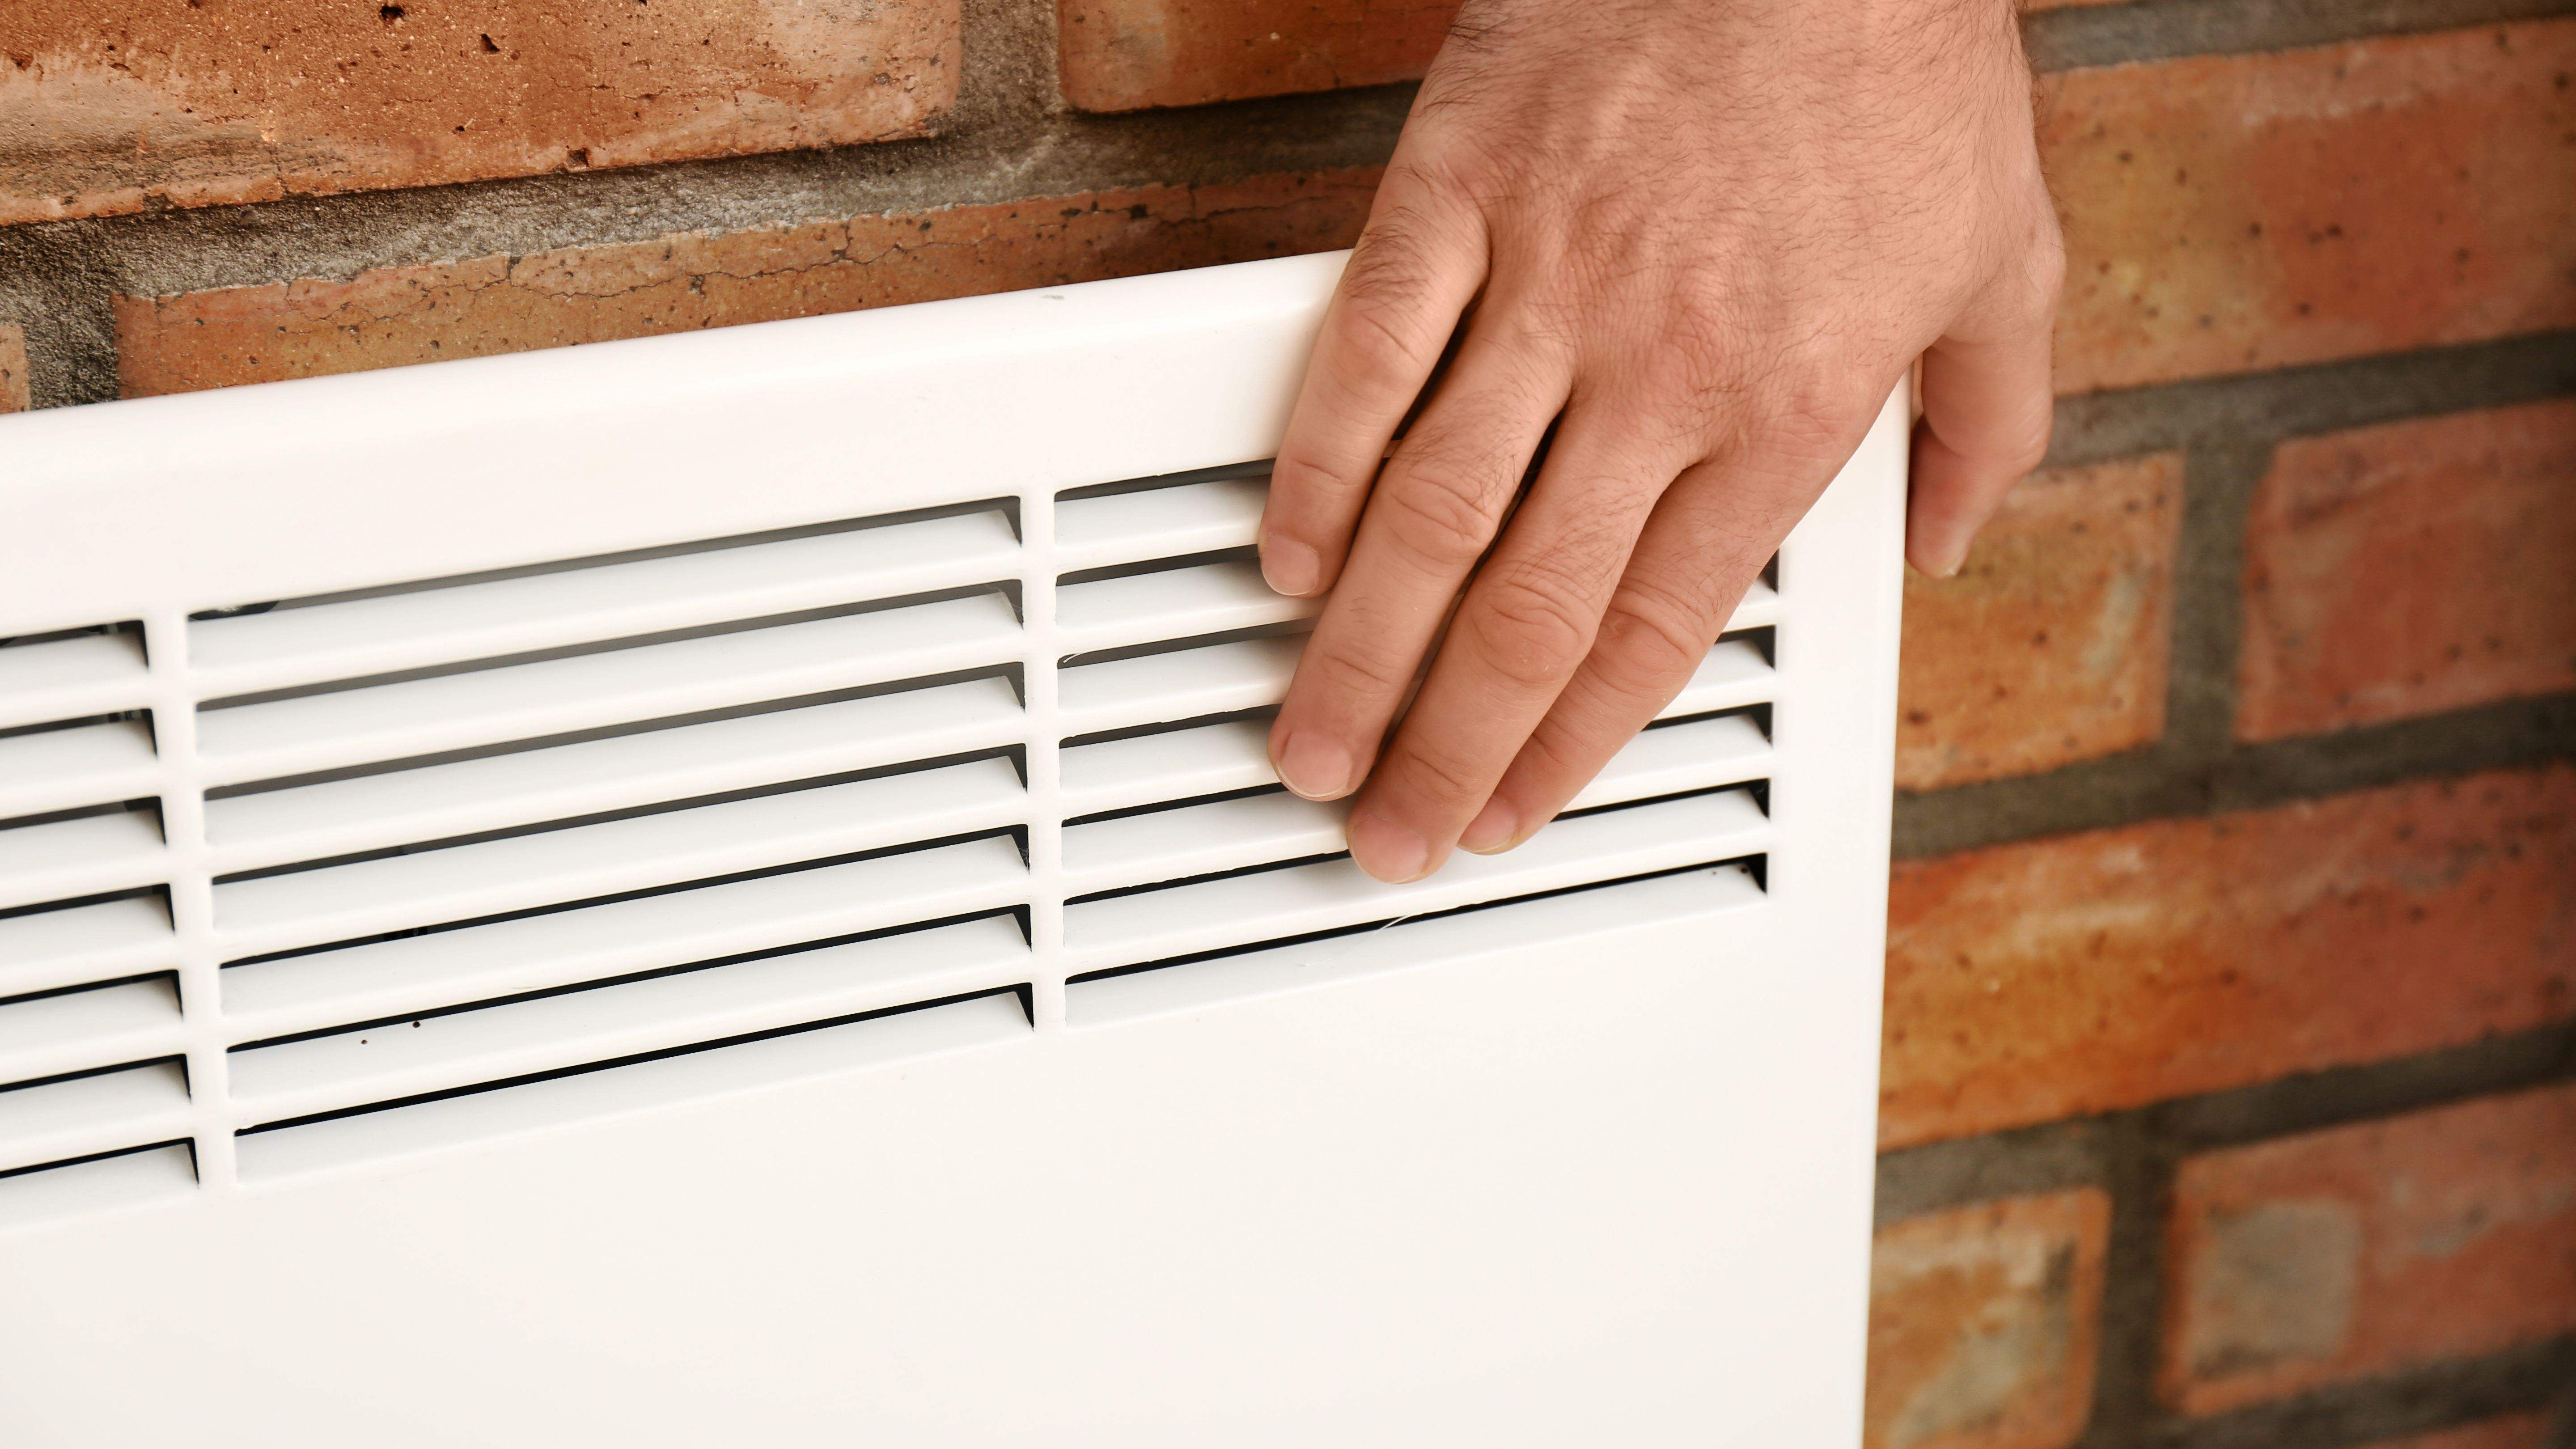 Electric heater and radiator buying guide